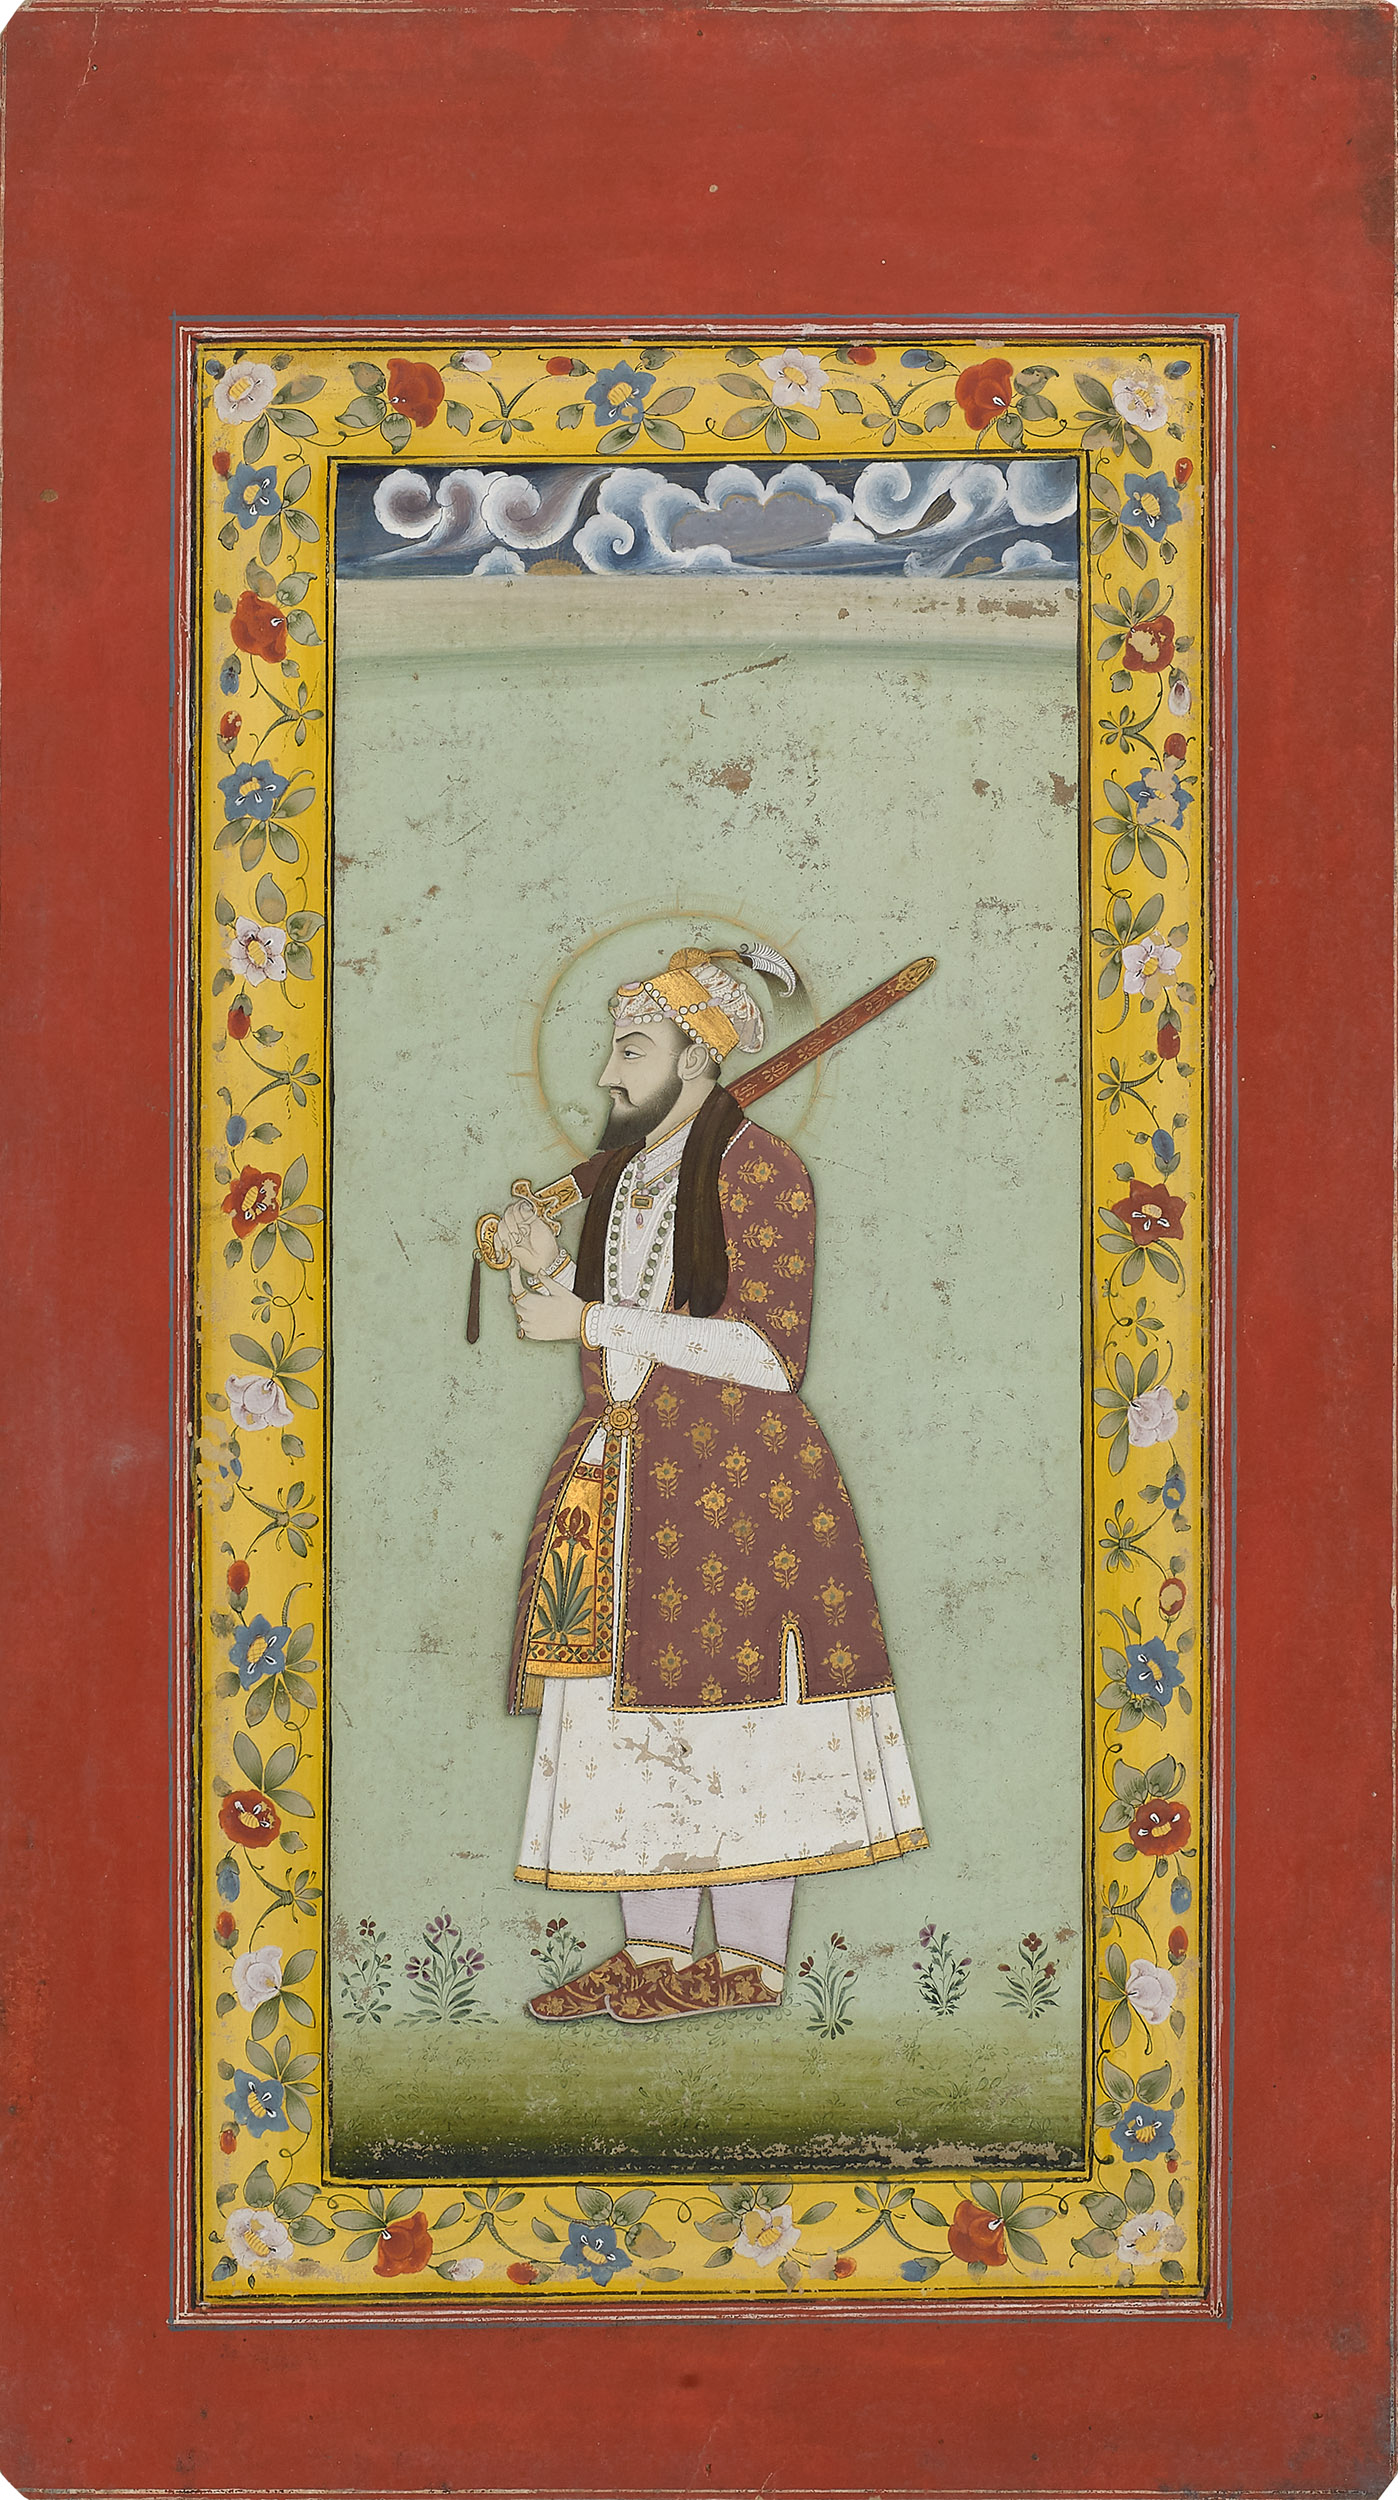 Shah Jahan Holding a Sword